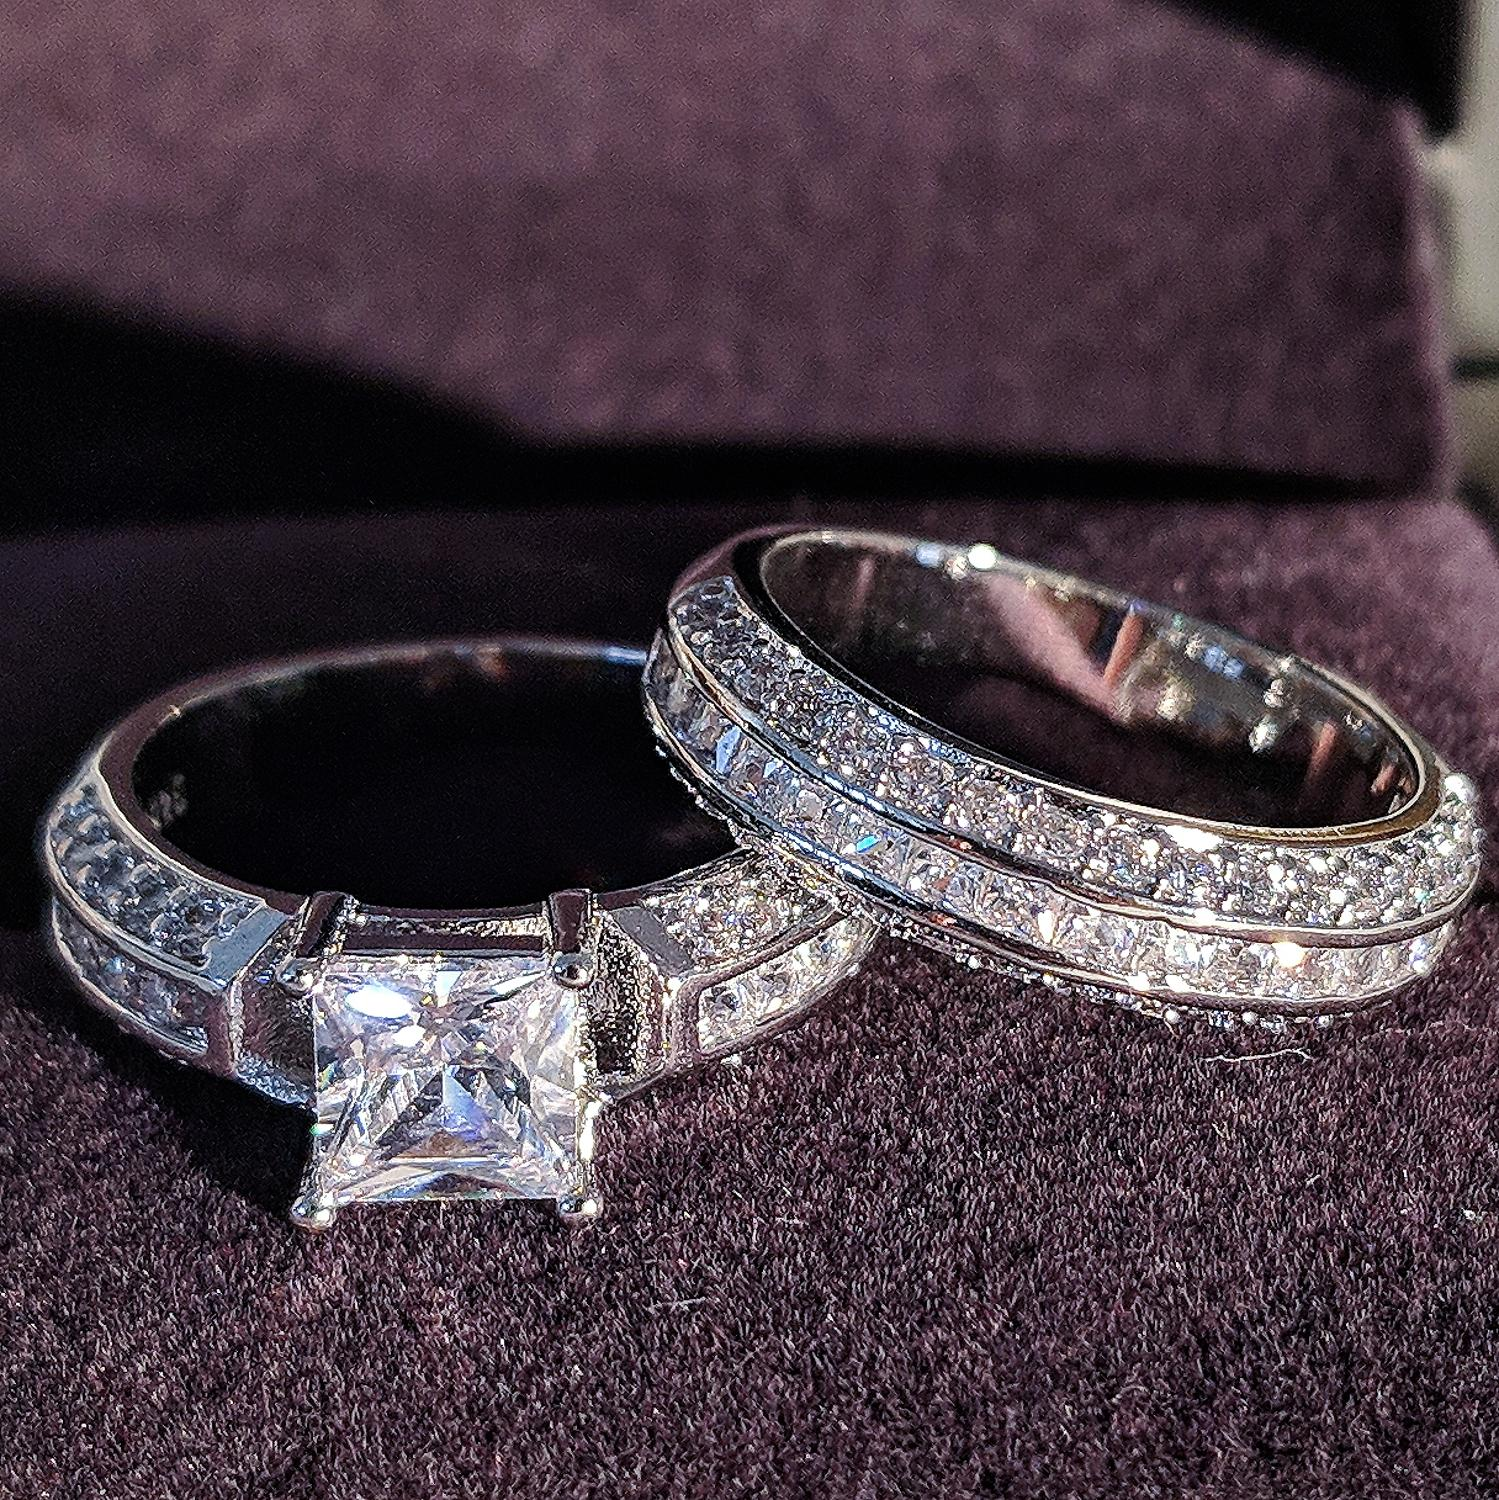 2020 New Arrival Luxury Princess 925 Sterling Silver Wedding Ring Set For Women Lady Anniversary Gift Bulk Sell Moonso R5174